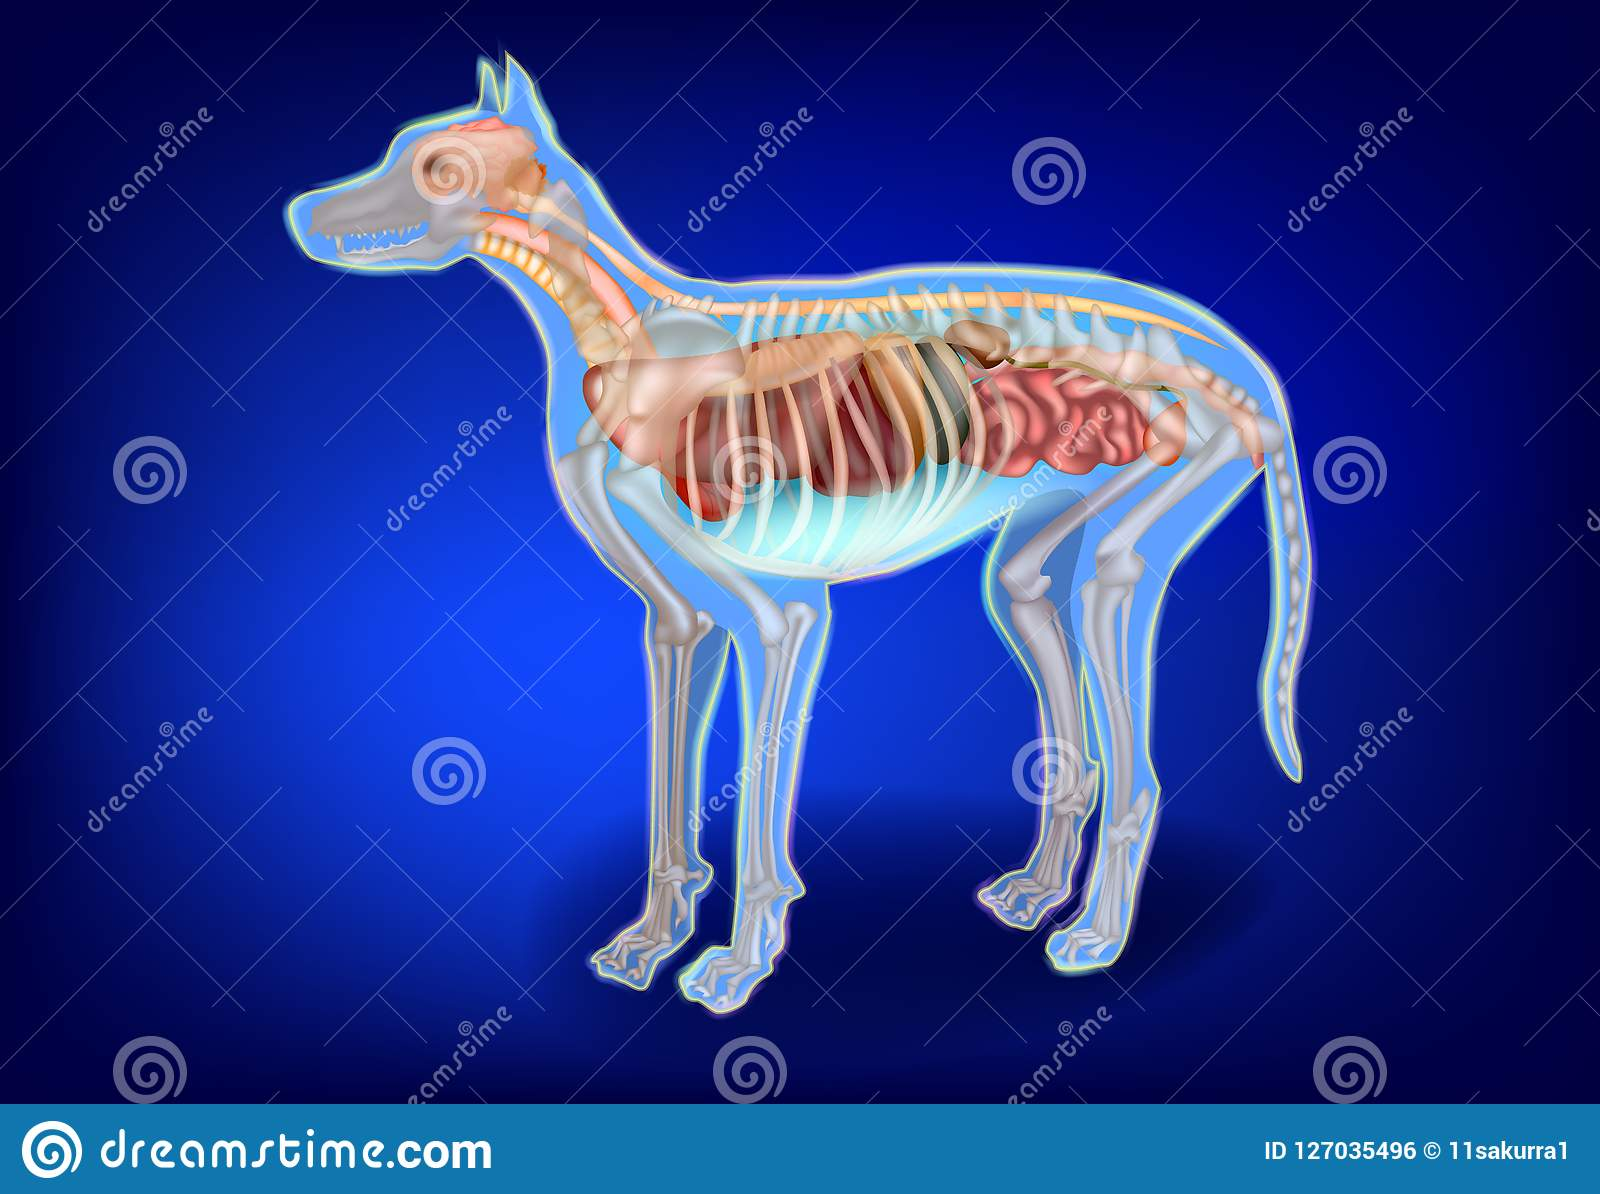 Canine Internal Organs And Skeleton Stock Vector Illustration Of